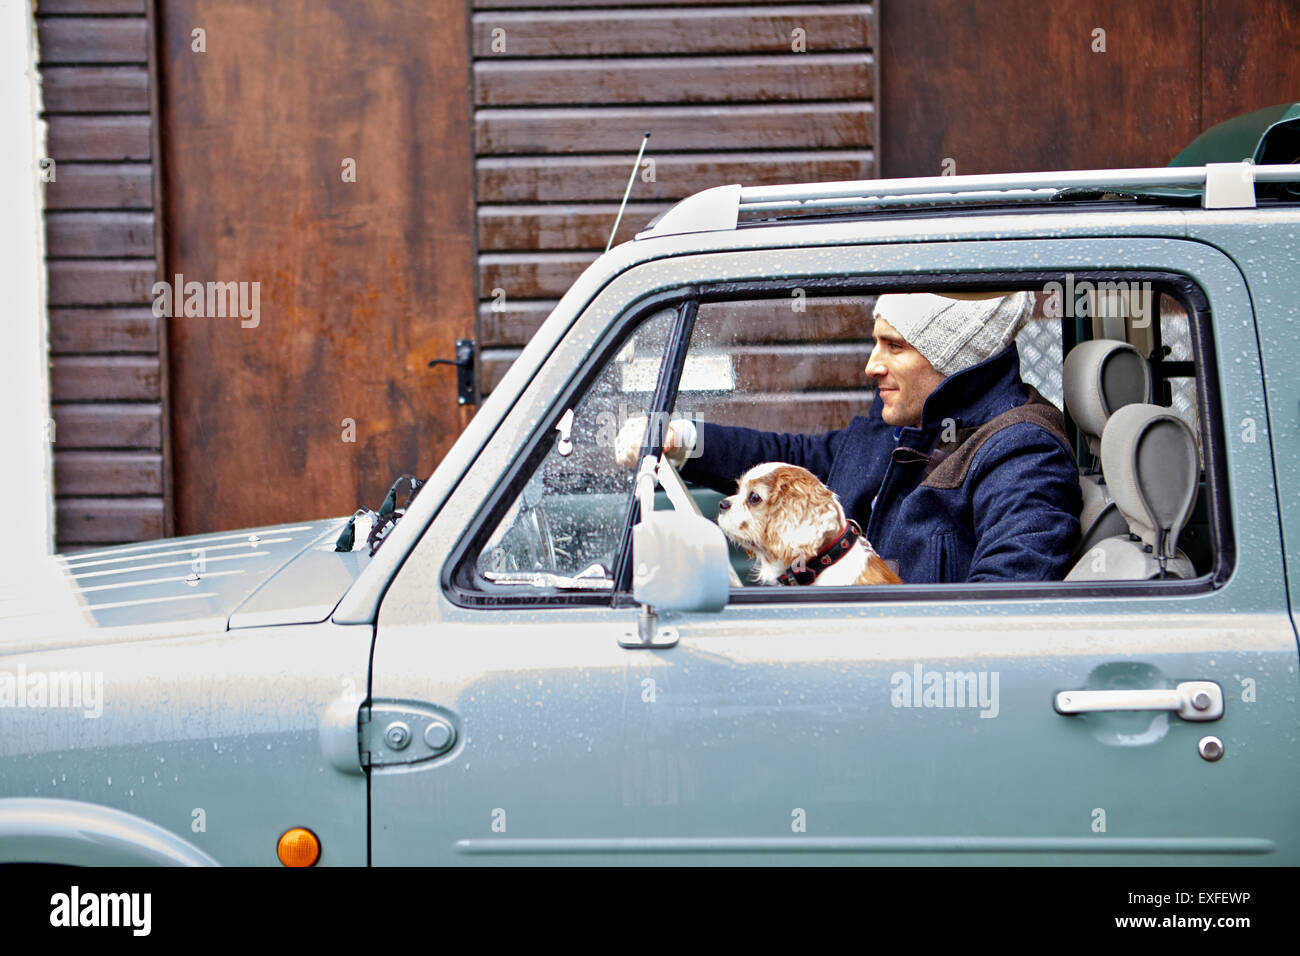 Mid adult man with dog driving van - Stock Image